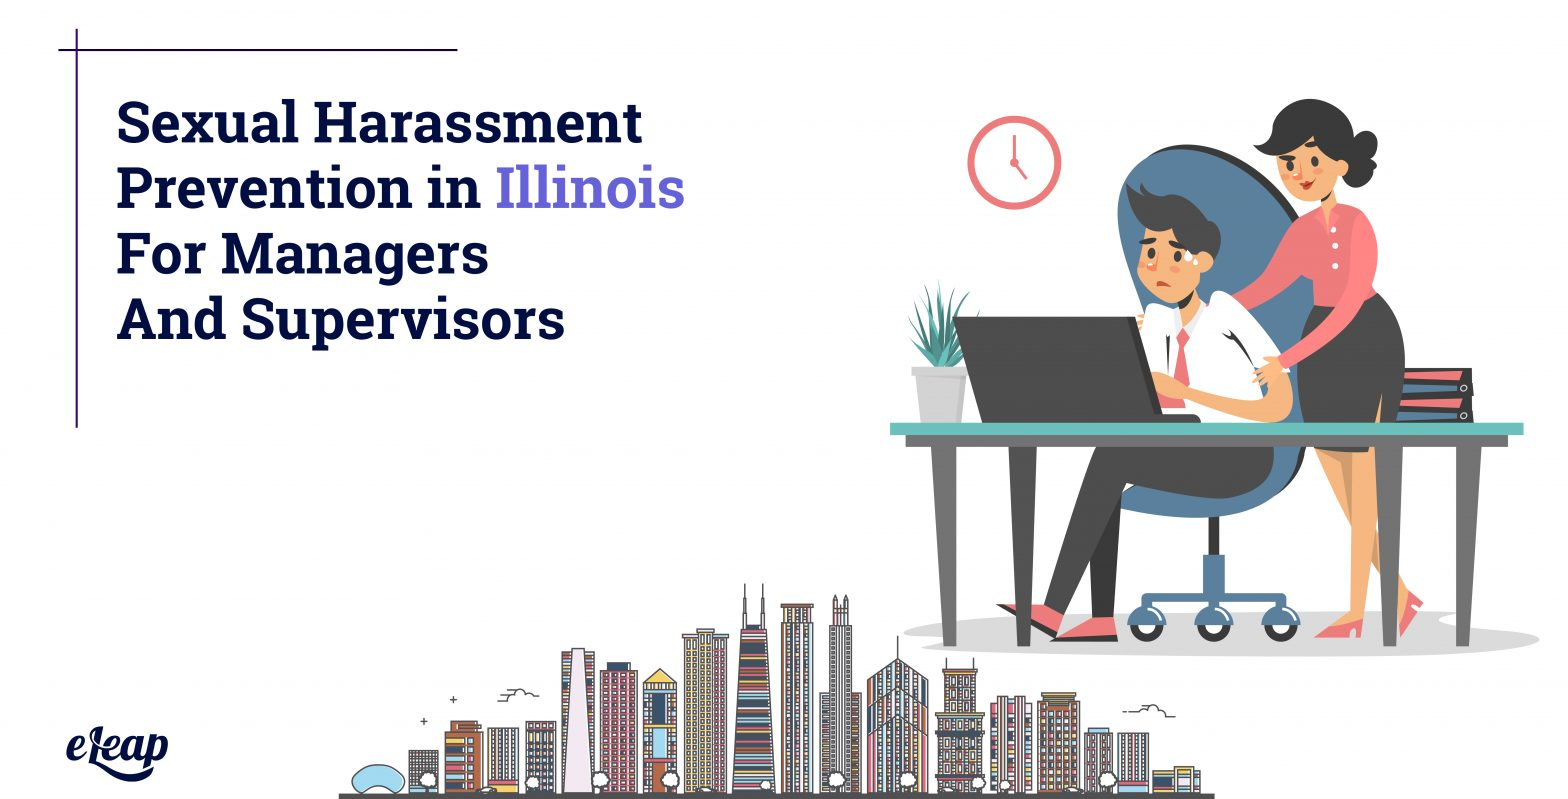 How to Be Sure Your Company is in Line with Illinois Mandated Sexual Harassment Training